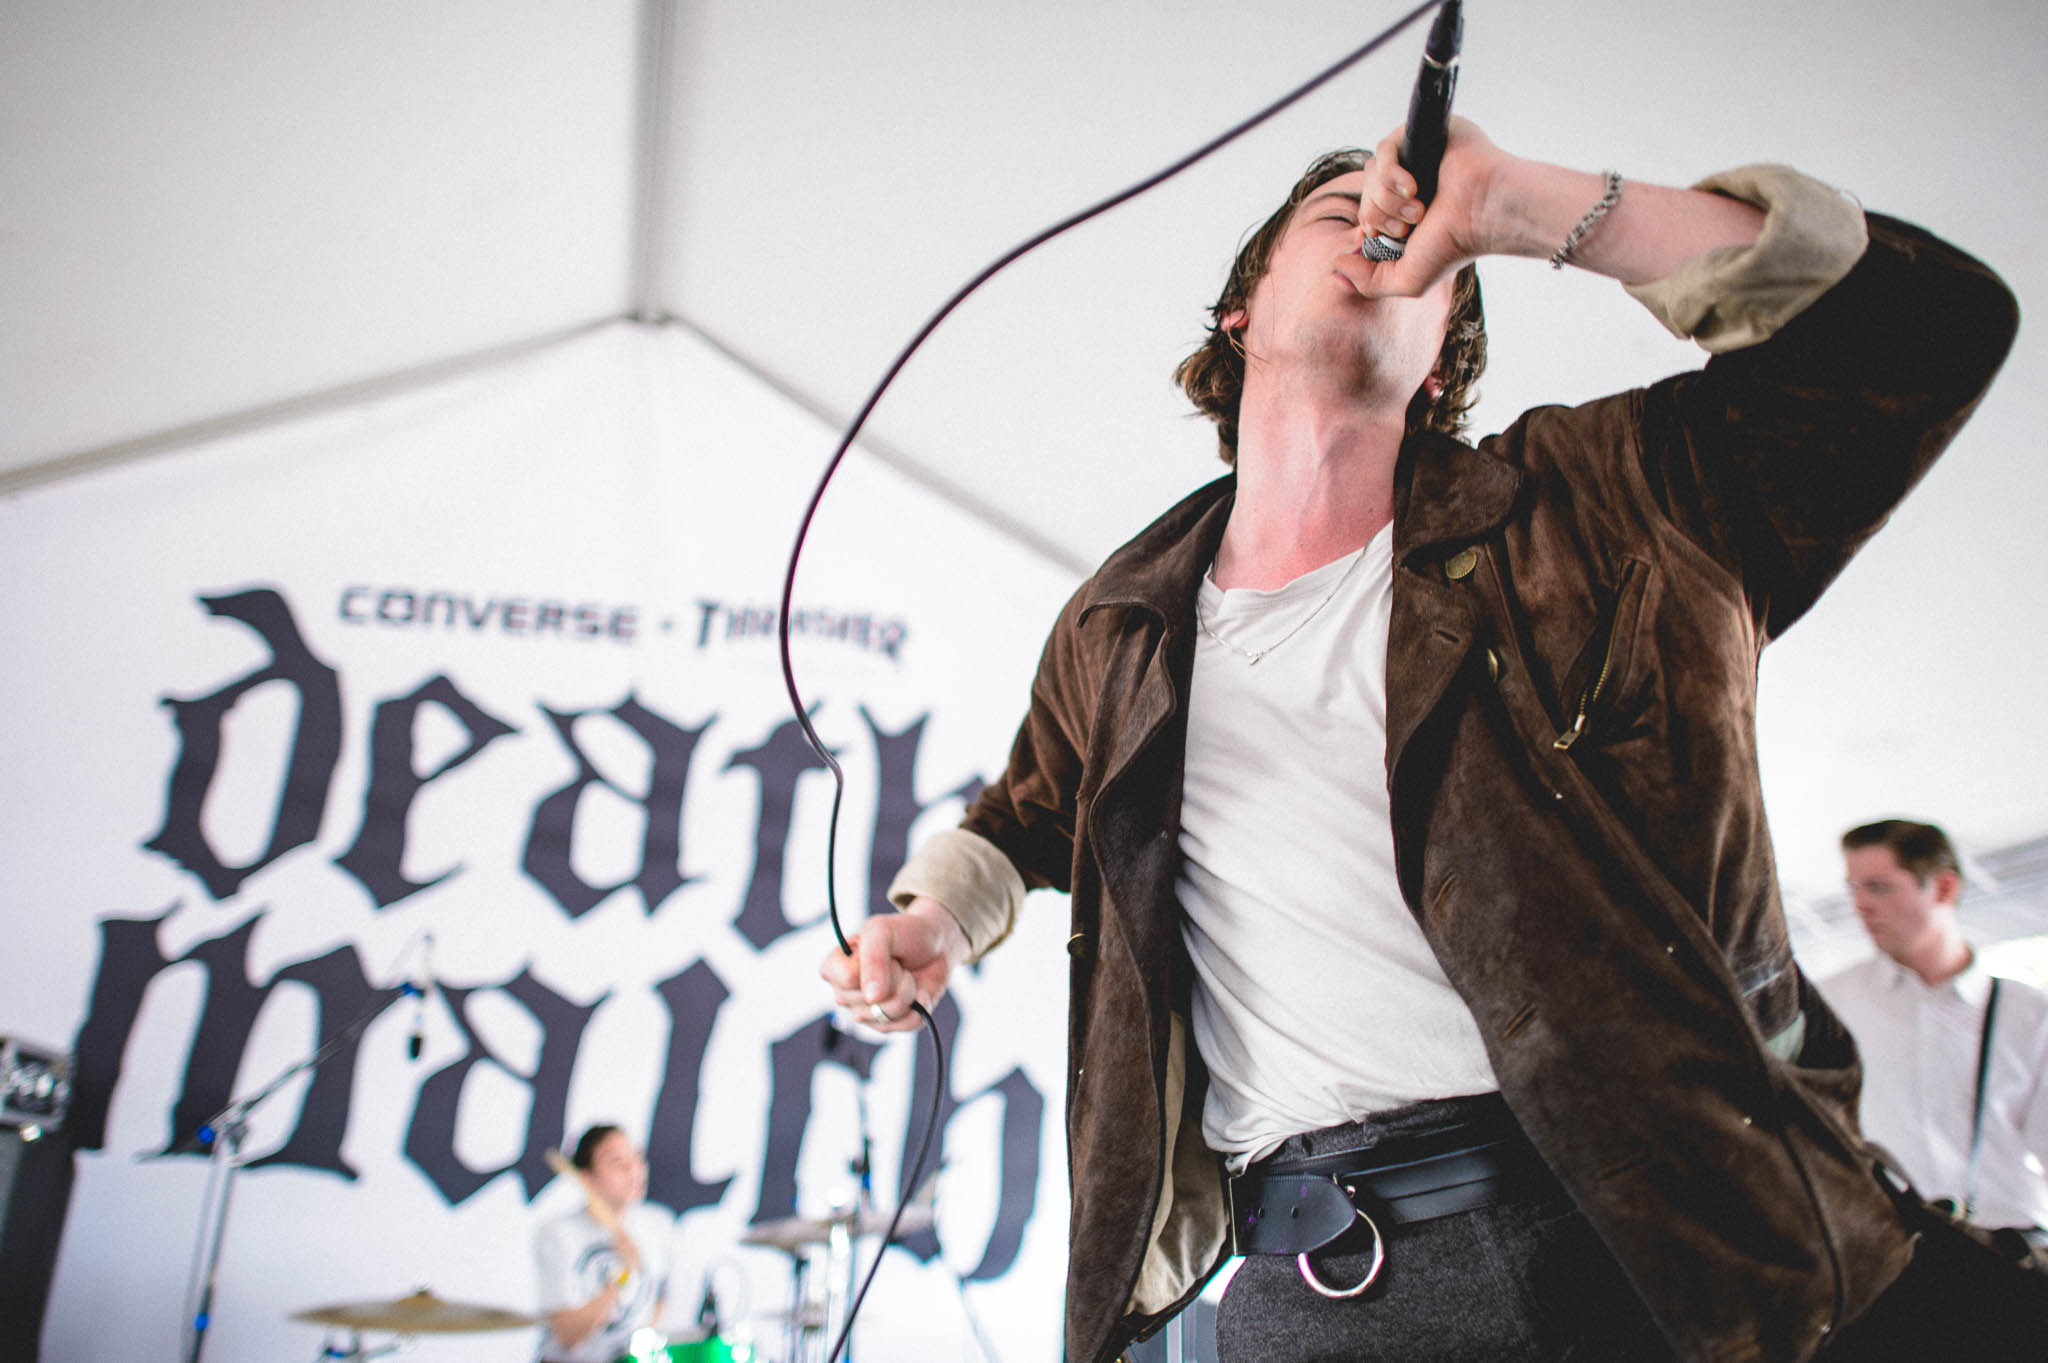 Iceage at SXSW 2015